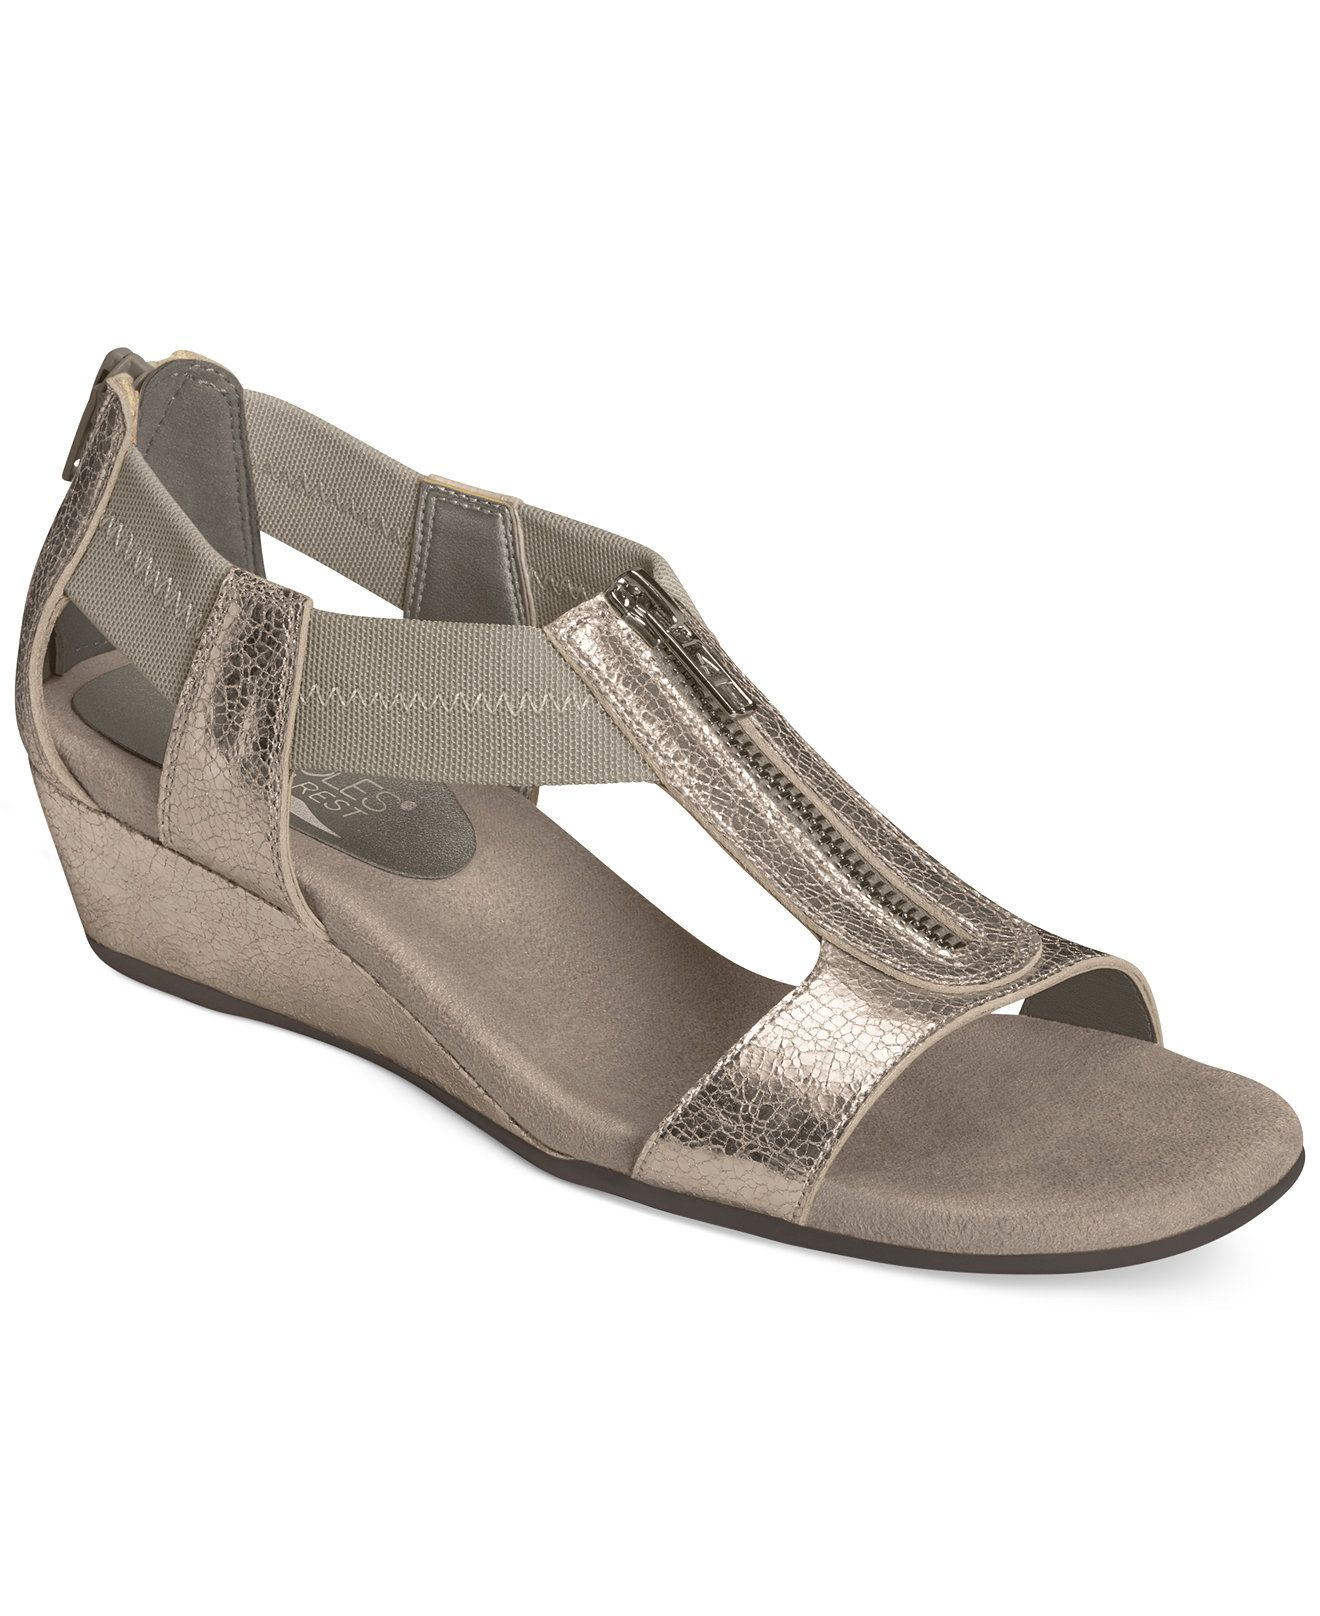 23f5d45ef2d6 Aerosoles Serenyeti Wedge Sandals - Shoes - We have these at out Mayfair  Store